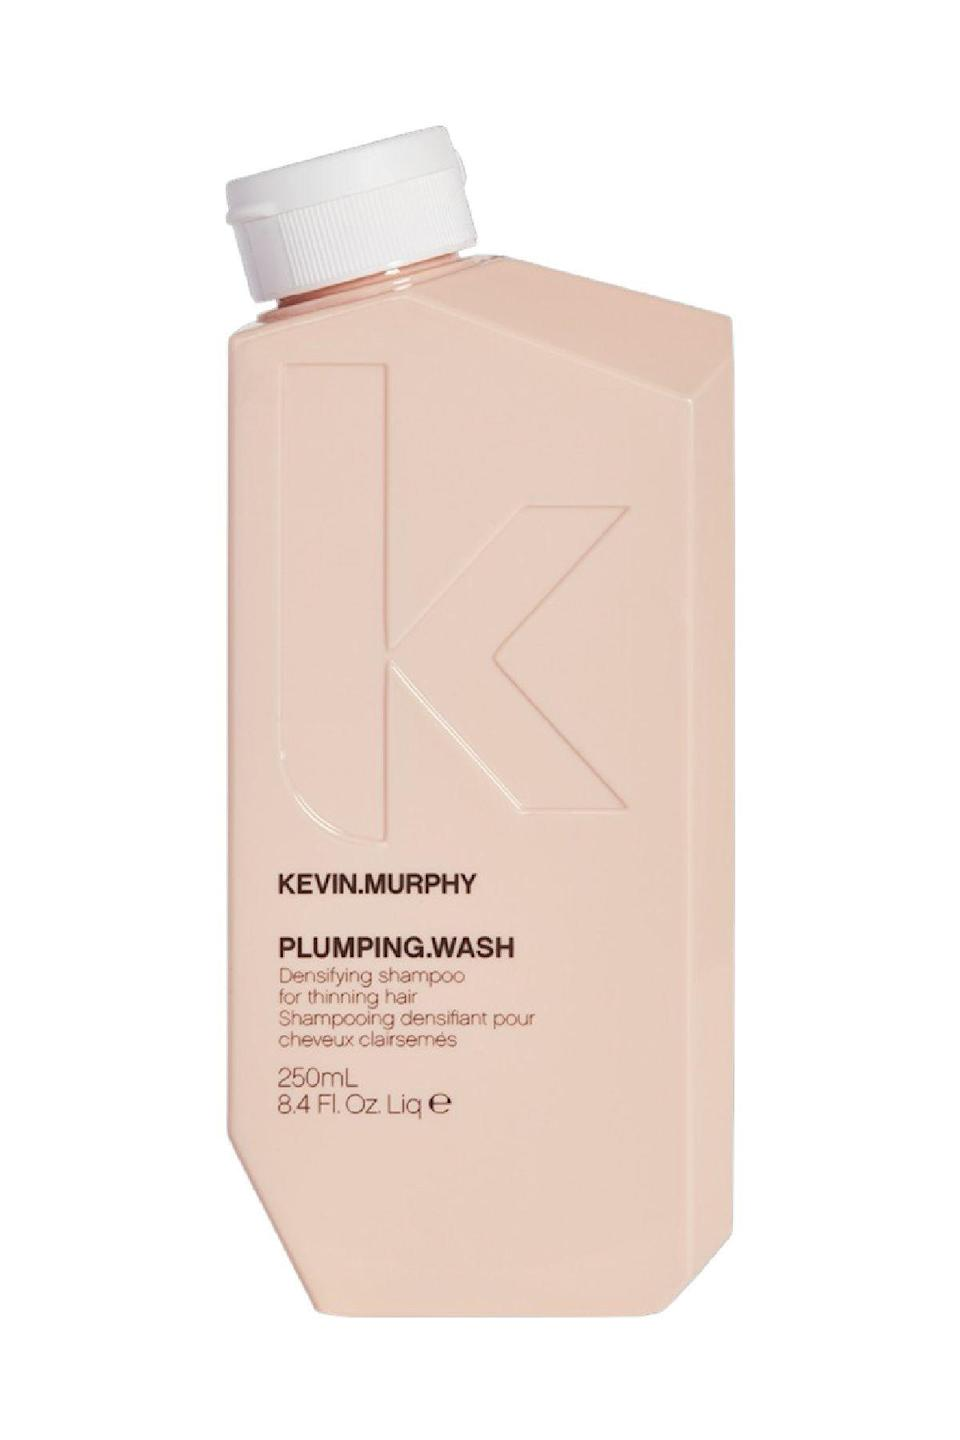 "<p><strong>Kevin Murphy</strong></p><p>amazon.com</p><p><strong>$37.99</strong></p><p><a href=""https://www.amazon.com/dp/B00KQXIJB8?tag=syn-yahoo-20&ascsubtag=%5Bartid%7C10058.g.25647514%5Bsrc%7Cyahoo-us"" rel=""nofollow noopener"" target=""_blank"" data-ylk=""slk:Shop Now"" class=""link rapid-noclick-resp"">Shop Now</a></p><p>If you're in the market for a hair growth shampoo, chances are you wouldn't mind fuller looking hair while you wait for new follicles to sprout. Here, rice bran and amino acids work immediately to expand the diameter of the hair shaft while <strong>ginger root and nettle extract invigorate the scalp to maximize new growth. </strong></p>"